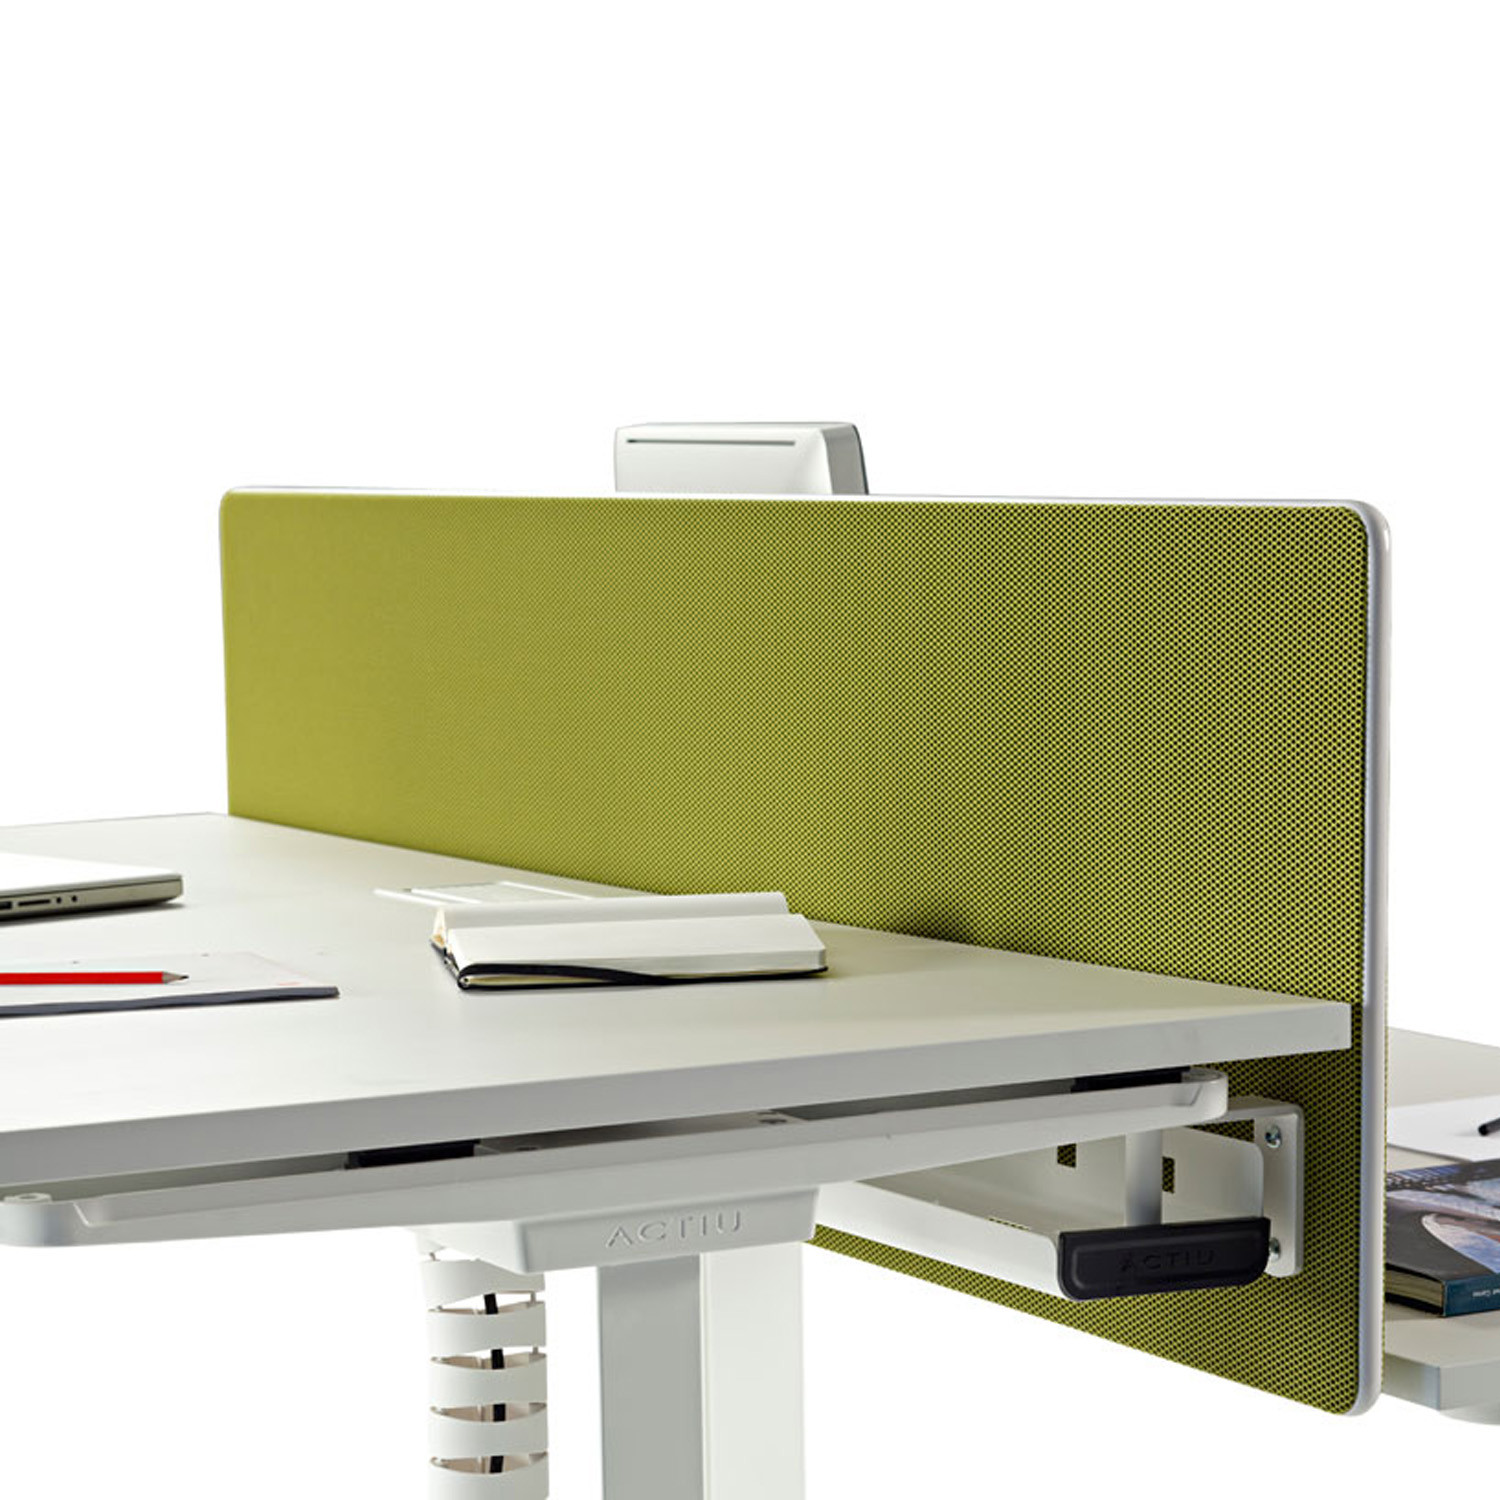 Mobility Height-Adjustable Desk Screen Divider